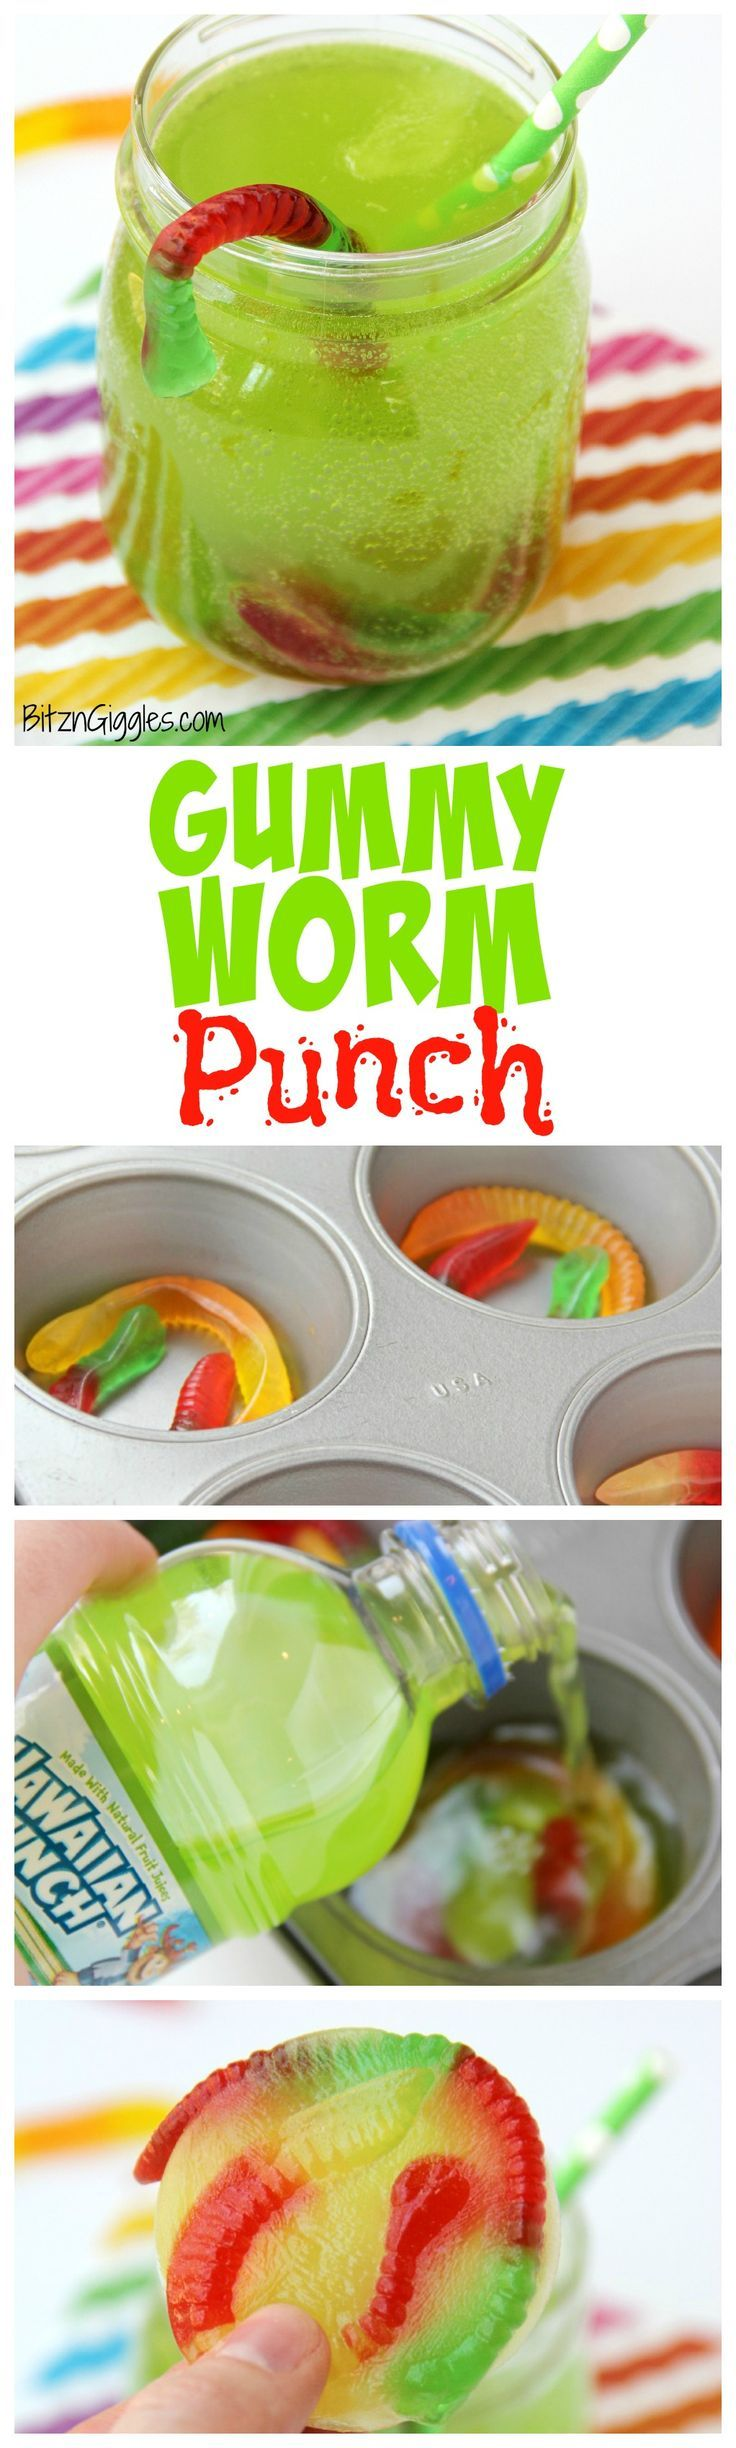 Gummy Worm Punch | Recipe | Saints